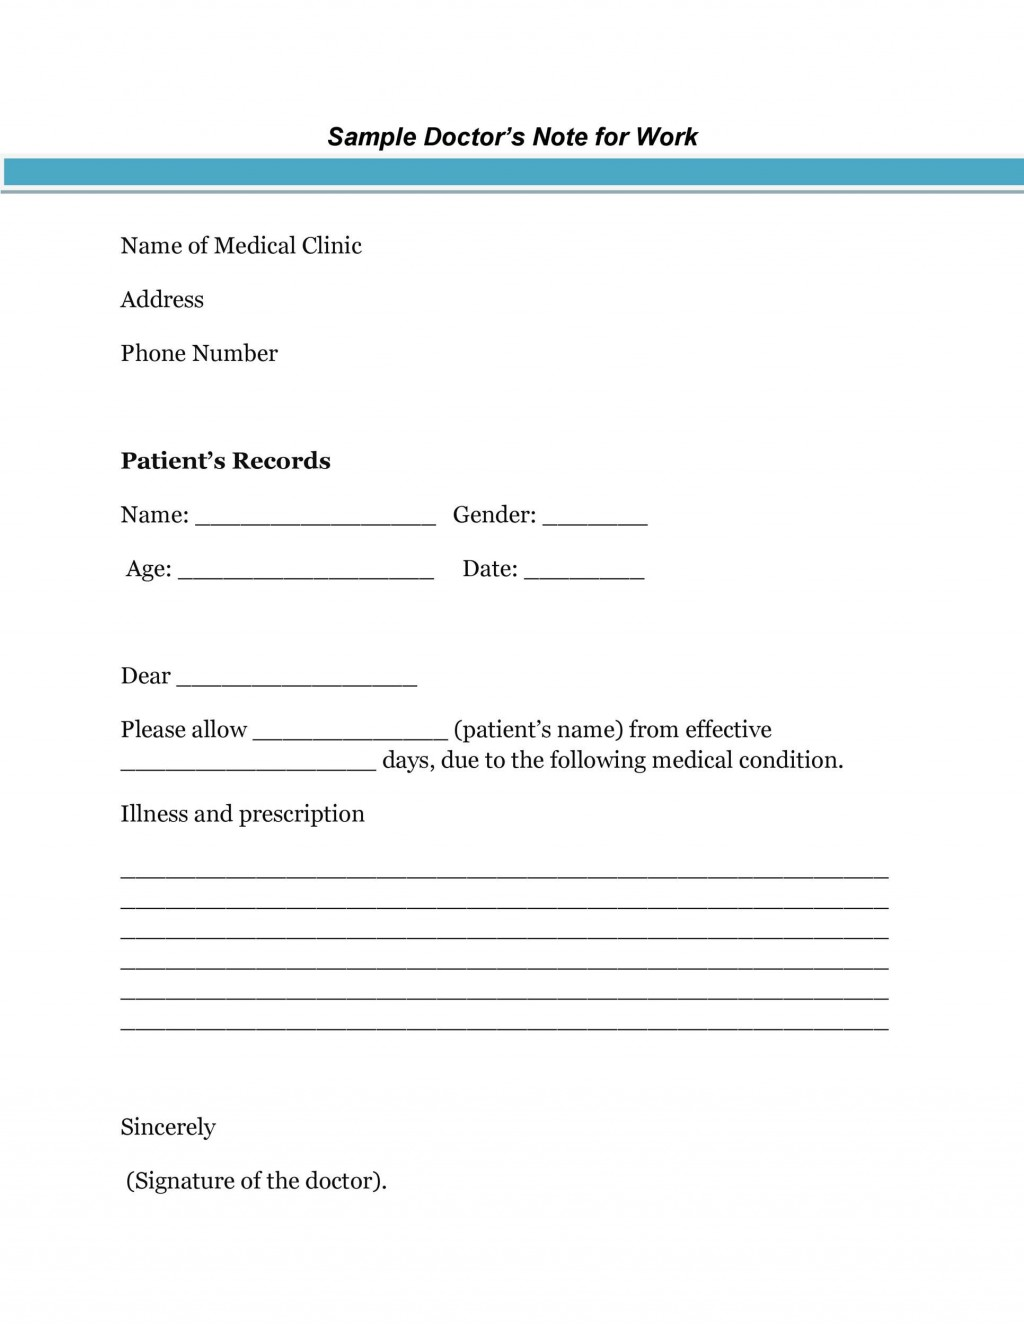 005 Wondrou Doctor Excuse Template For Work Highest Clarity  Missing NoteLarge